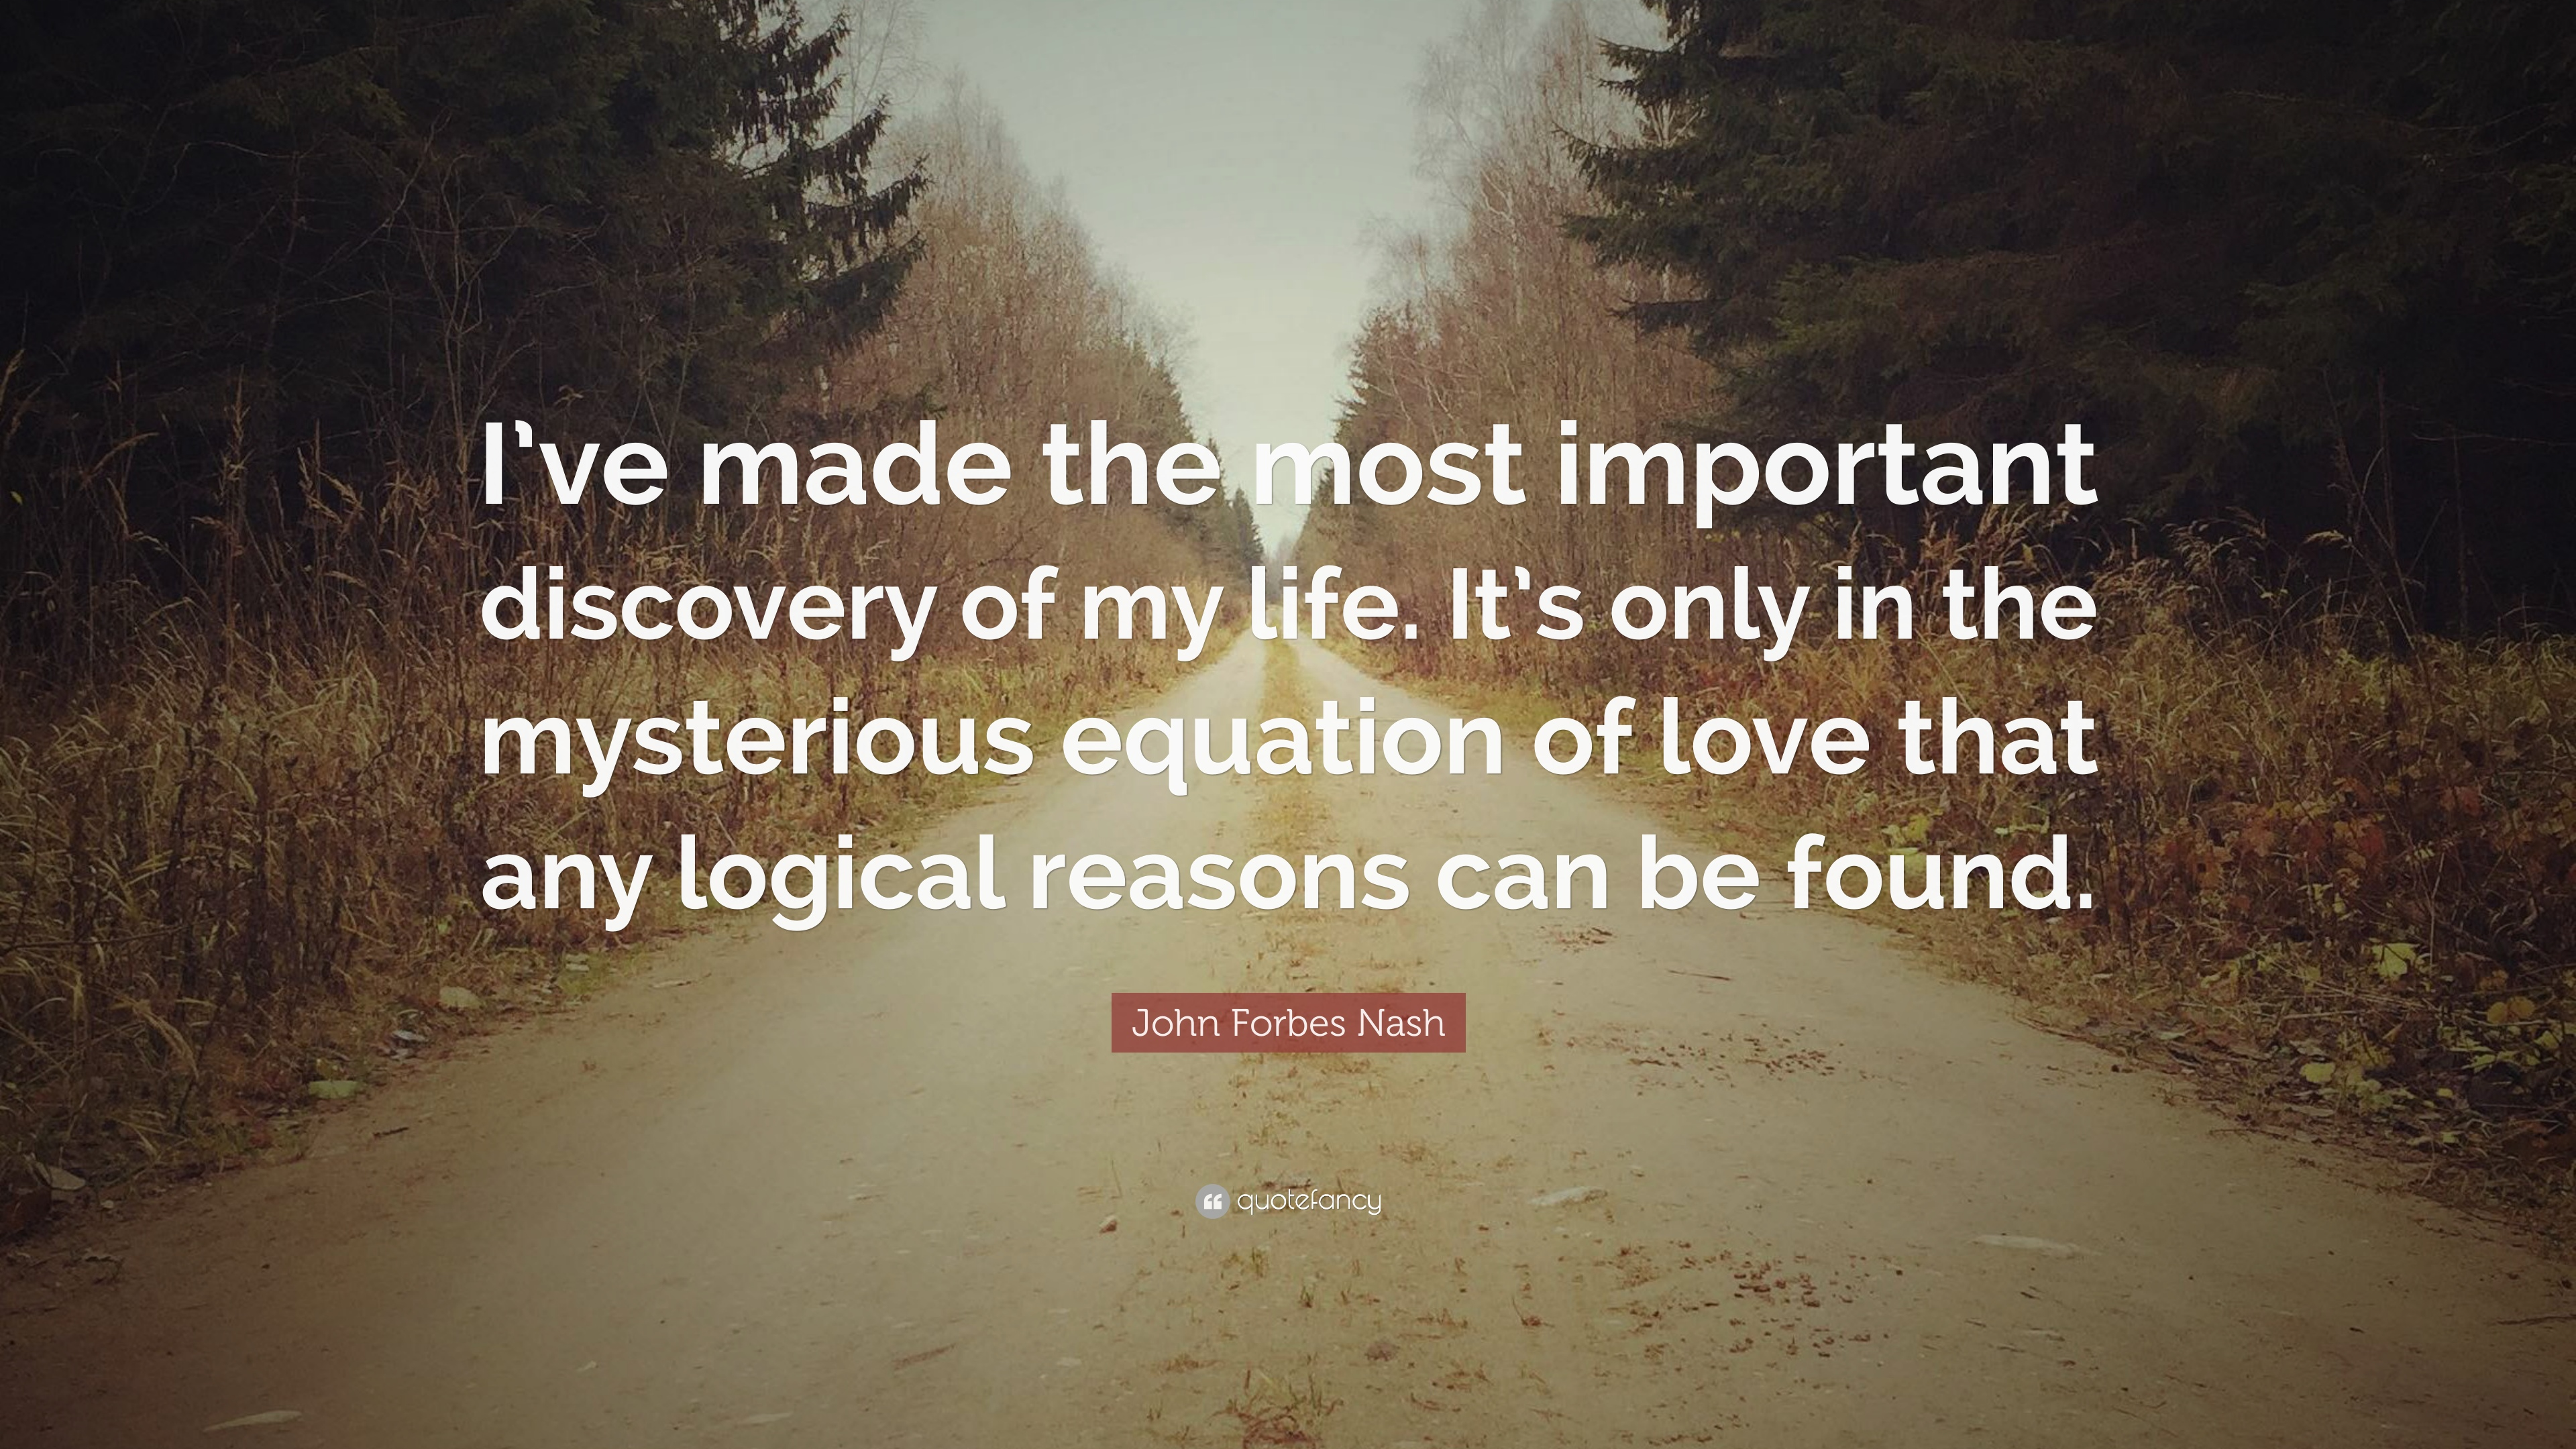 43 Famous Discovery Quotes Sayings About Discovery: John Forbes Nash Quotes (16 Wallpapers)